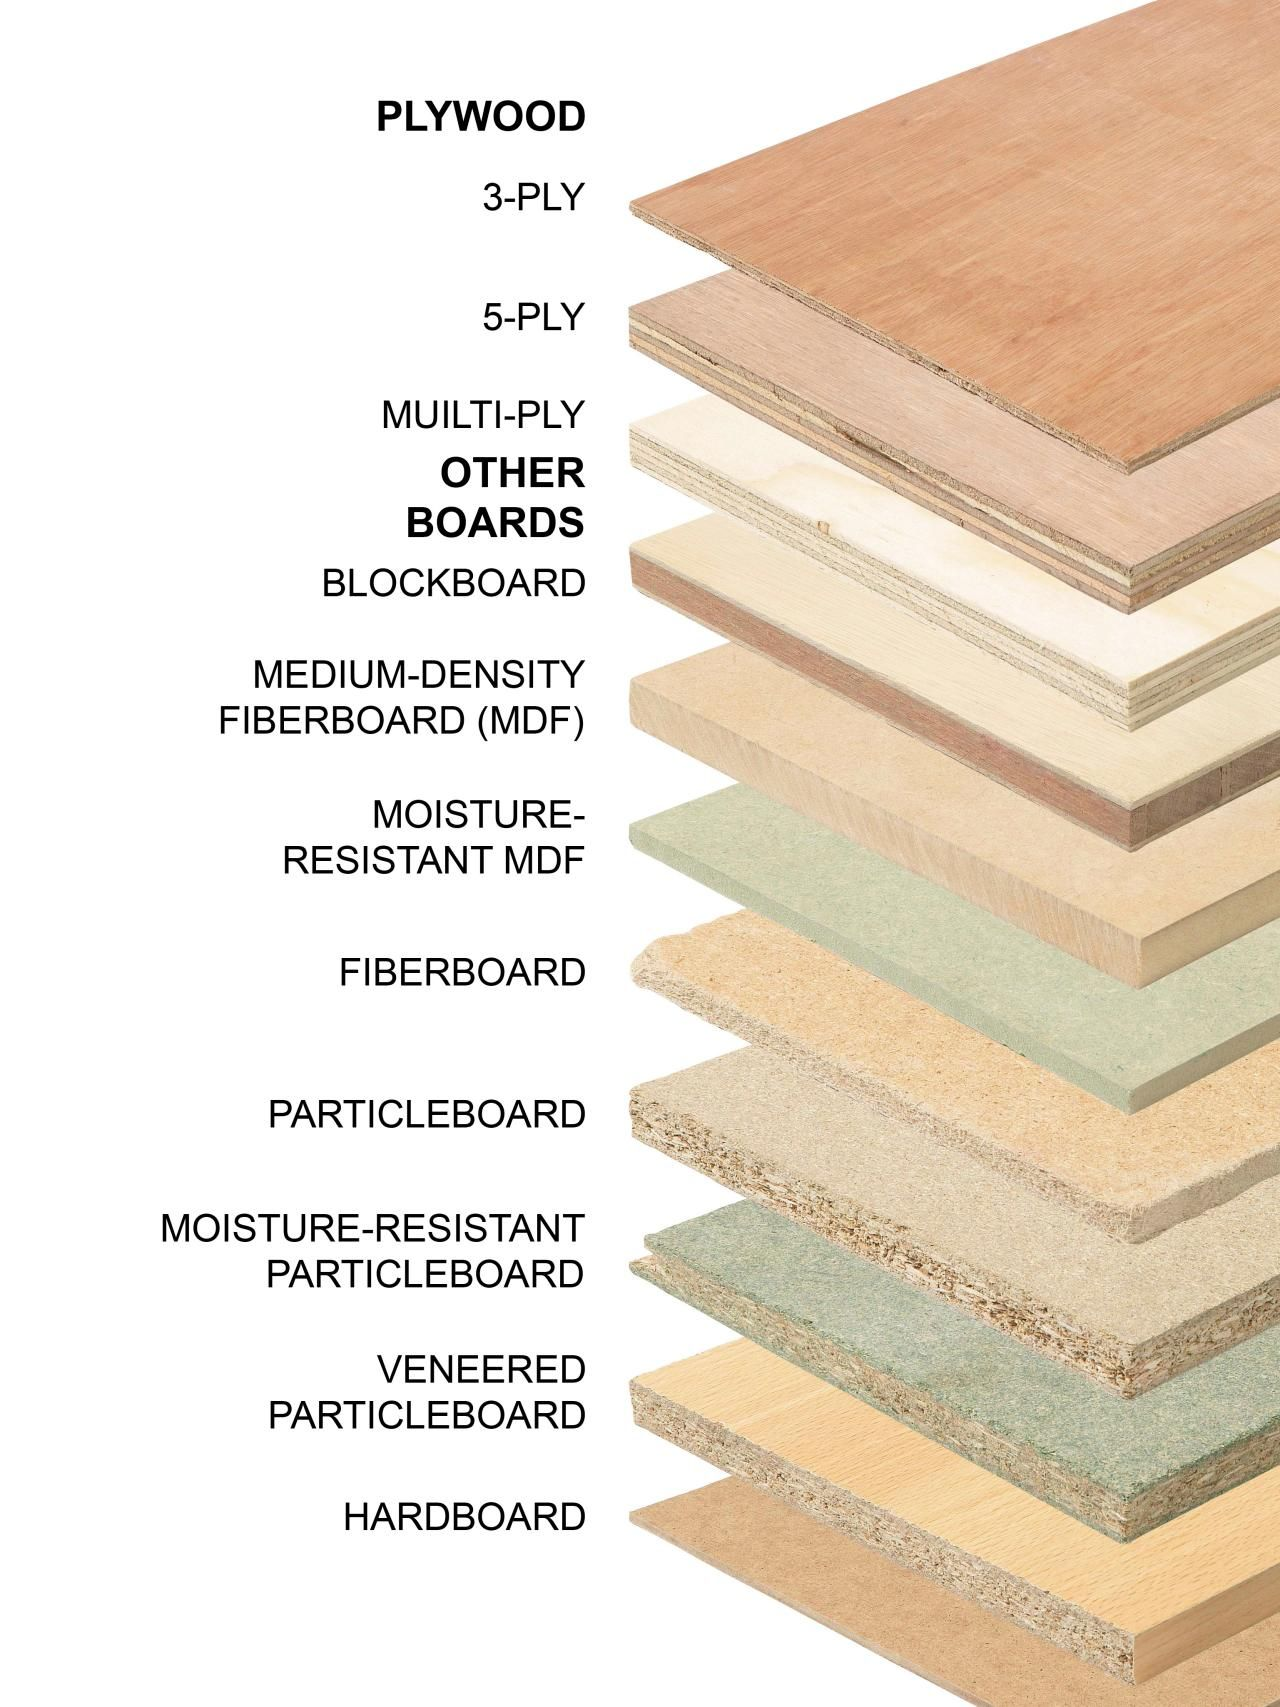 All About the Different Types of Plywood